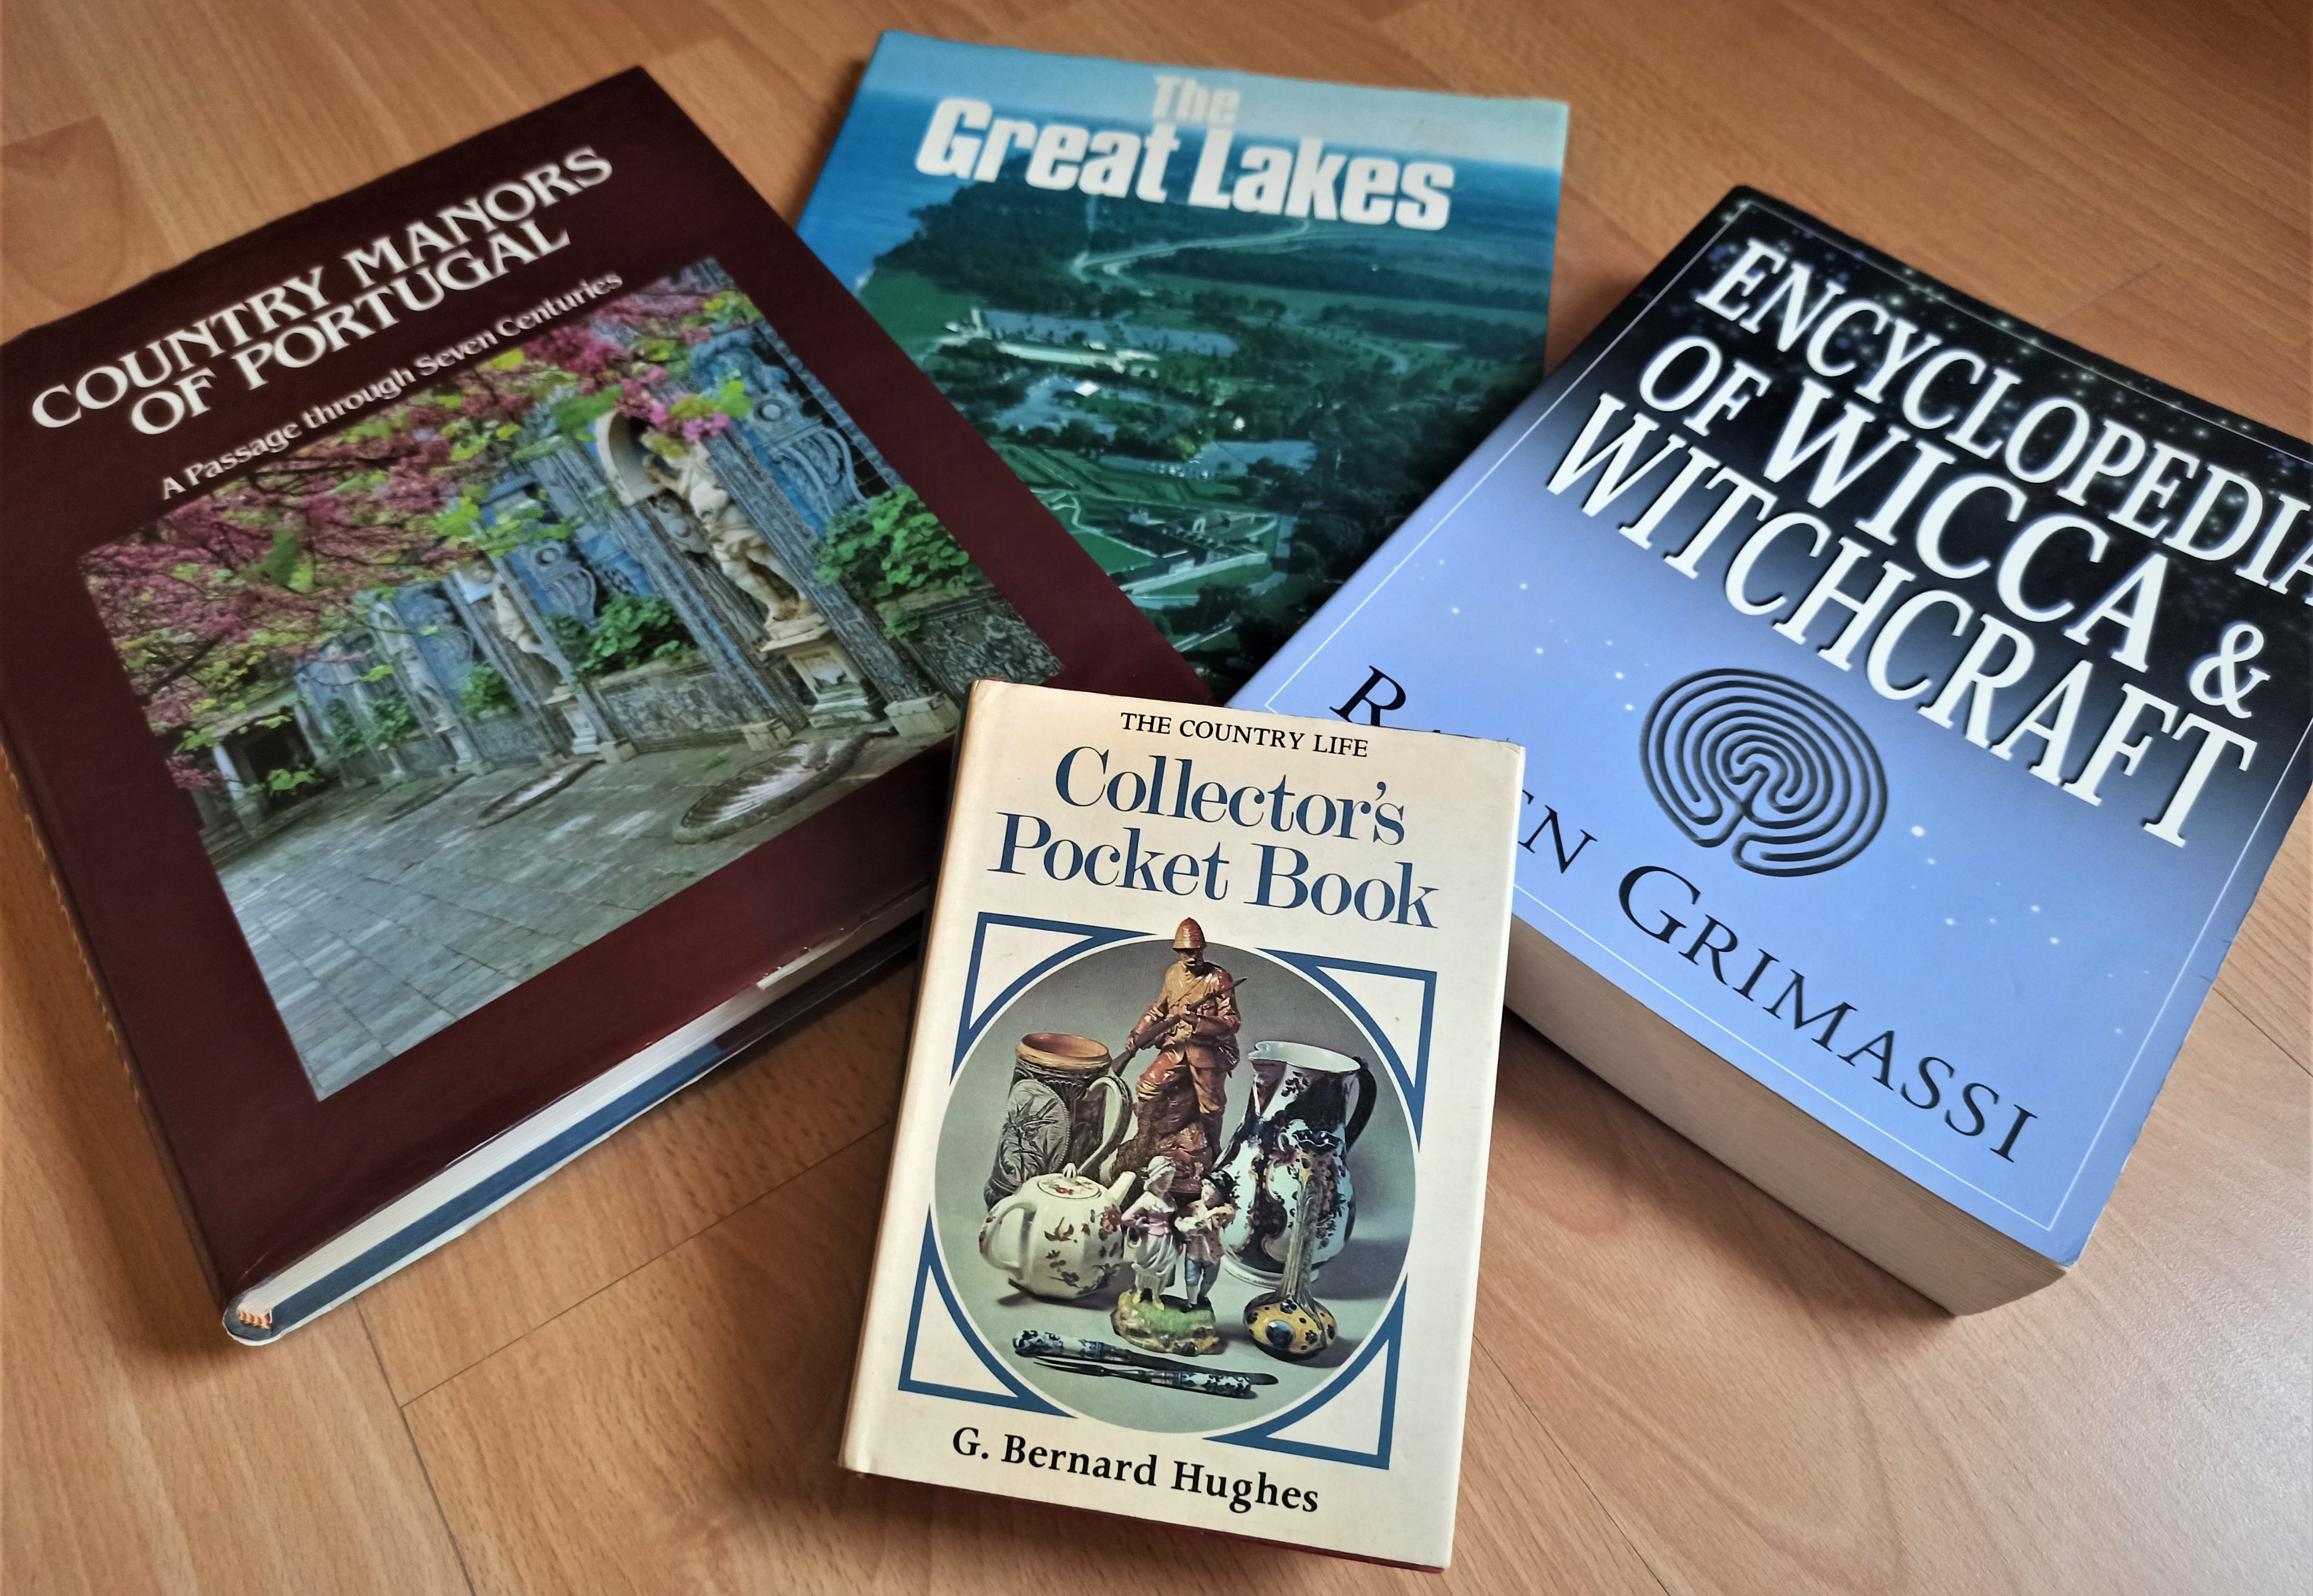 Various books, Country Manors of Portugal, Wicca and Witchcraft Encyclopedia, Collector's Pocket Book, Great Lakes.